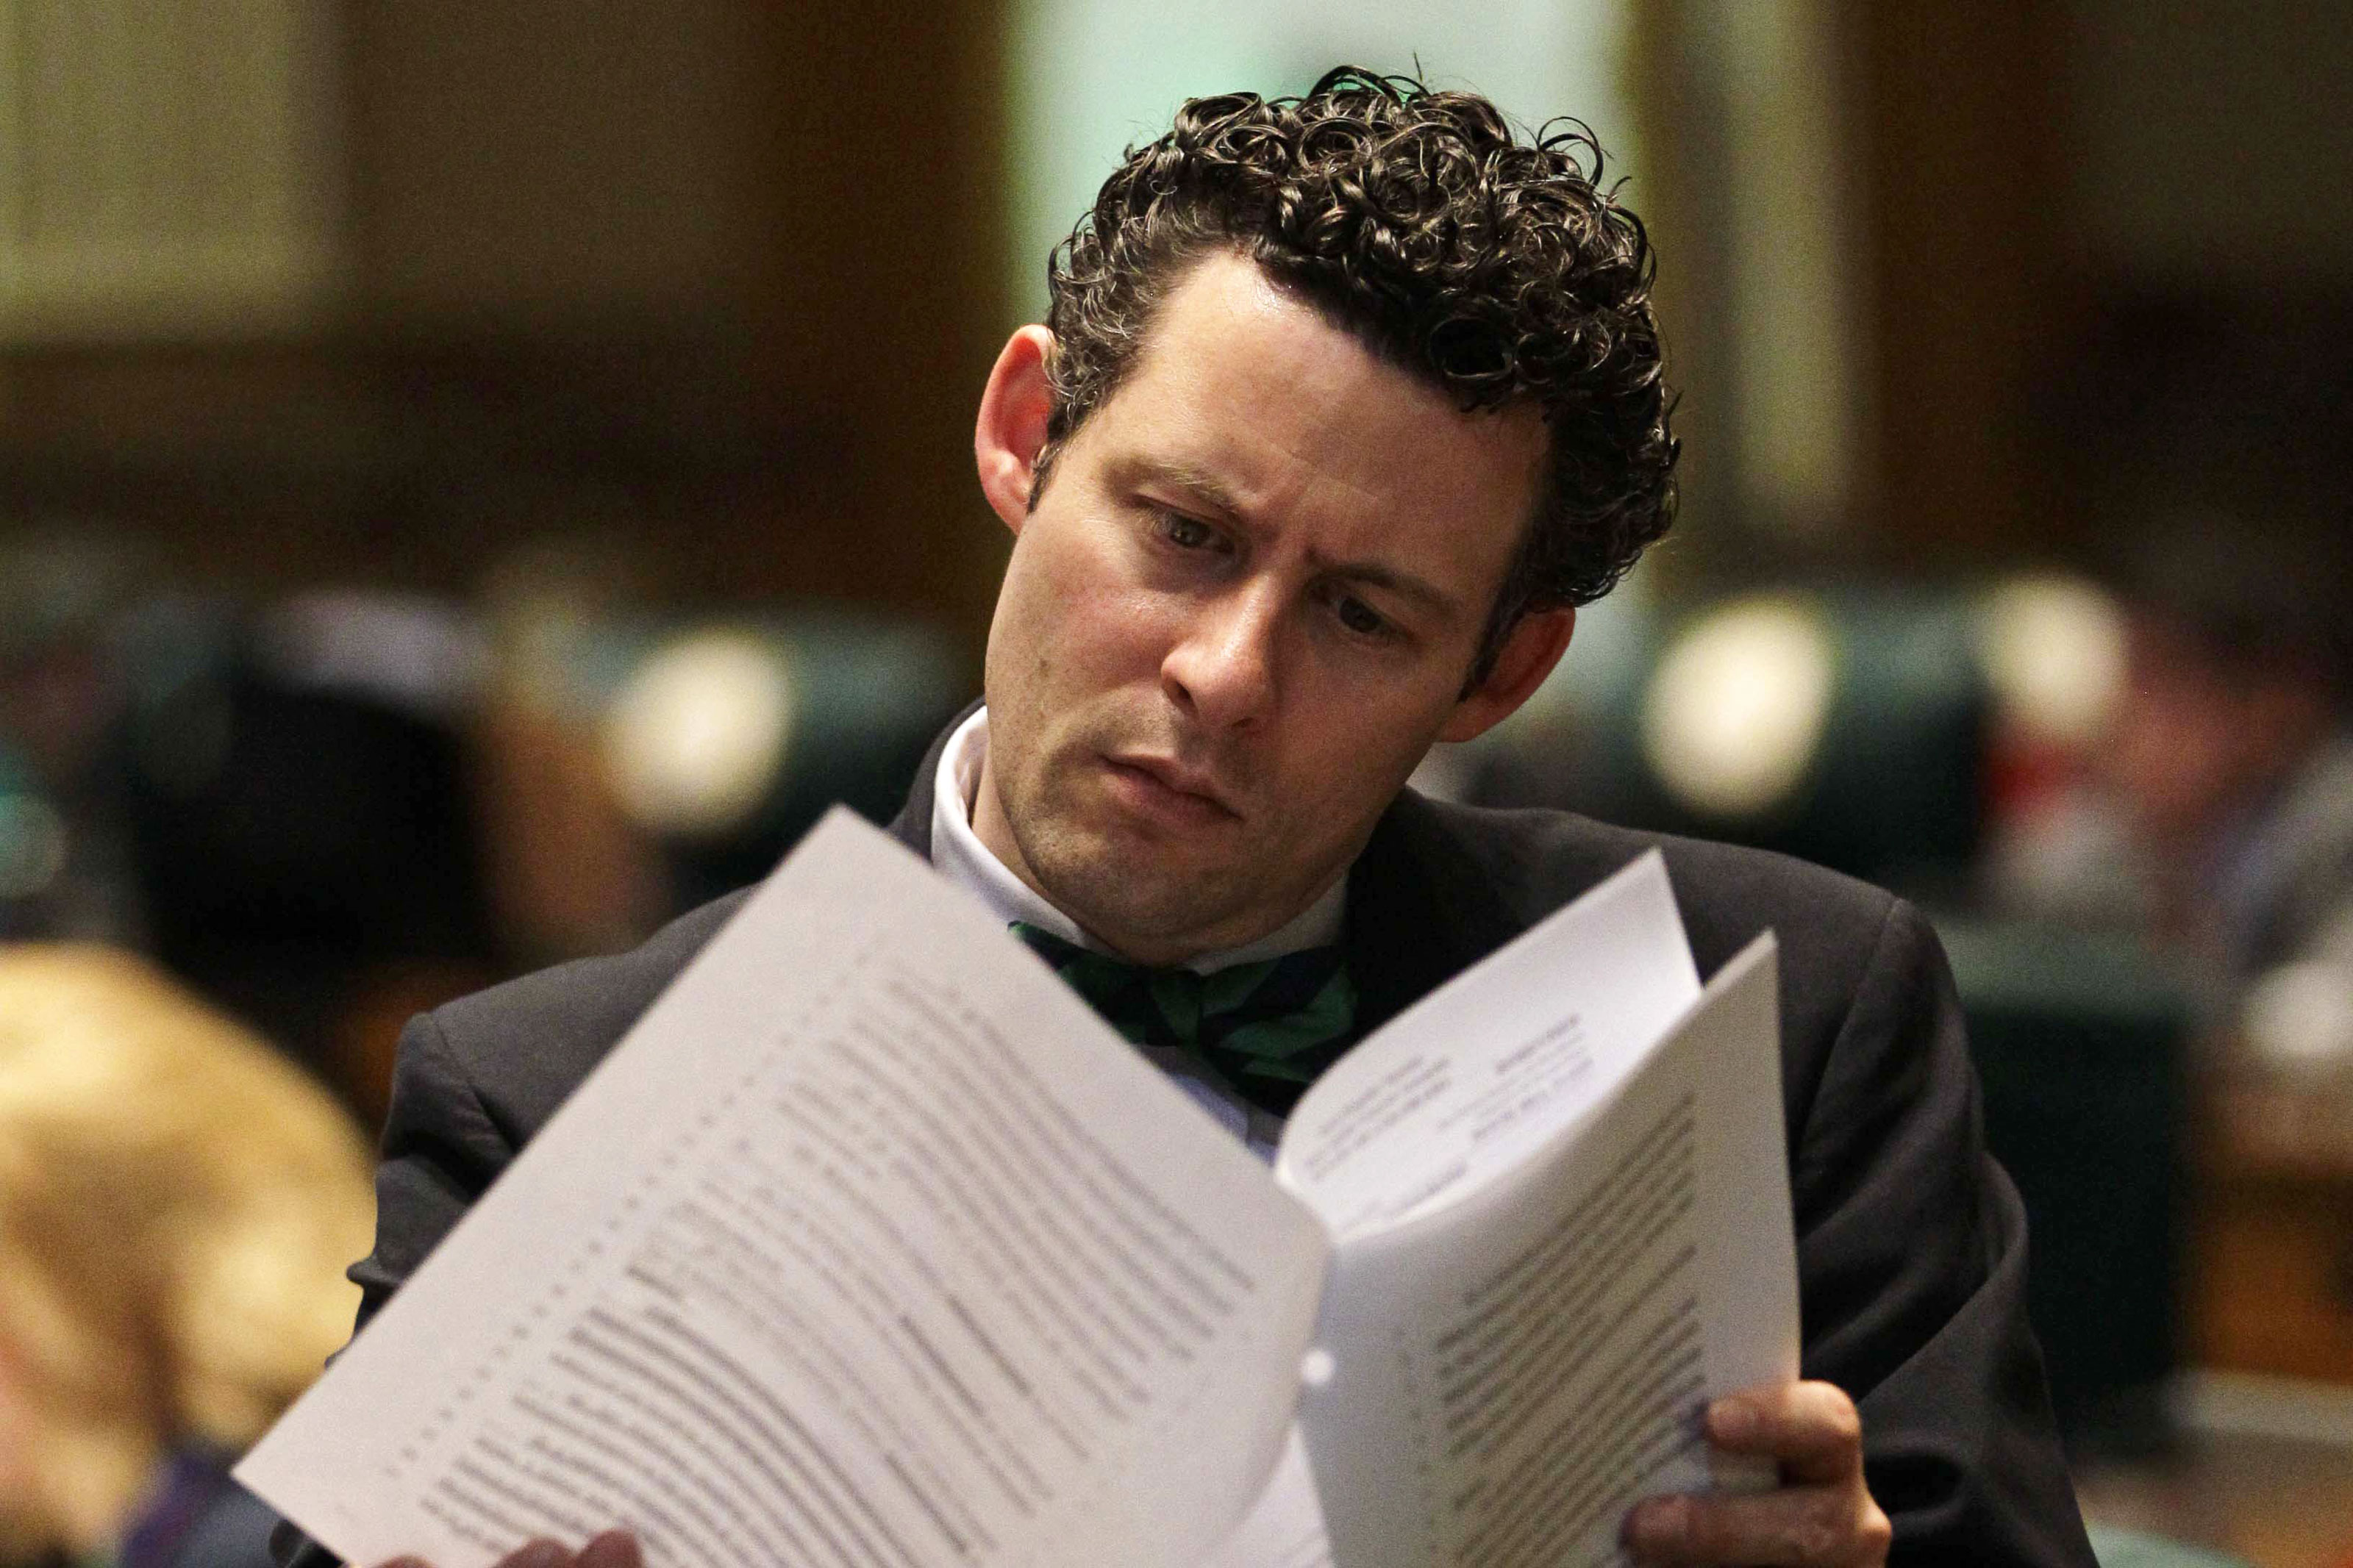 Photo: Rep. Justin Everett, R-Littleton, COLEG - AP